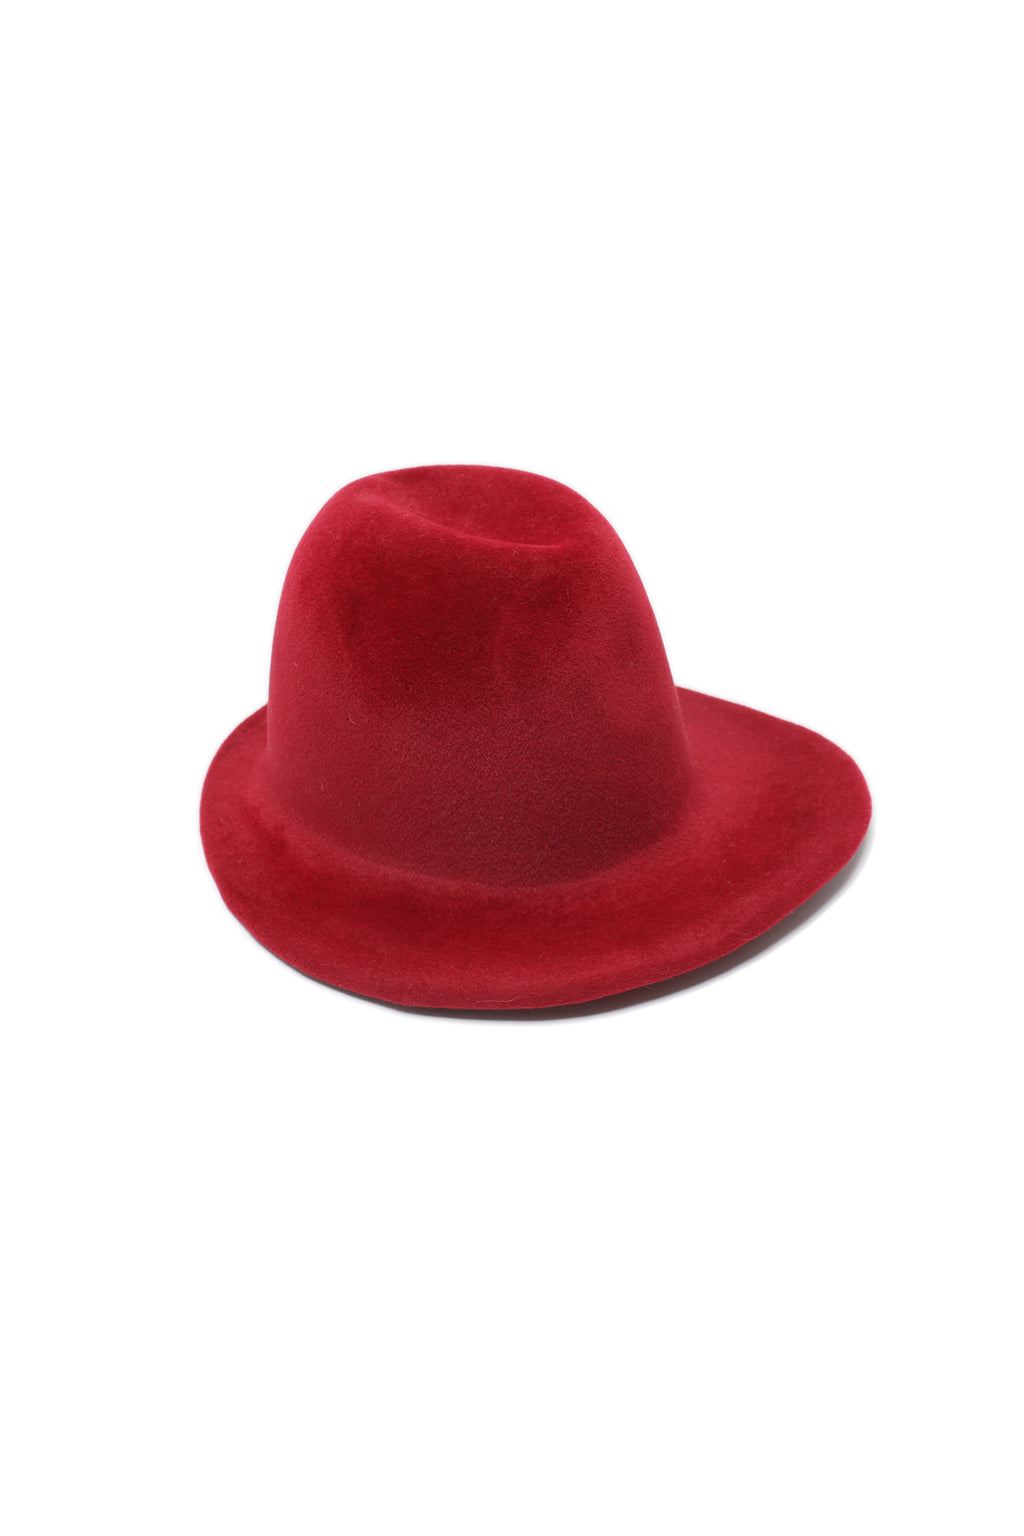 REINHARD PLANK HATS - Red